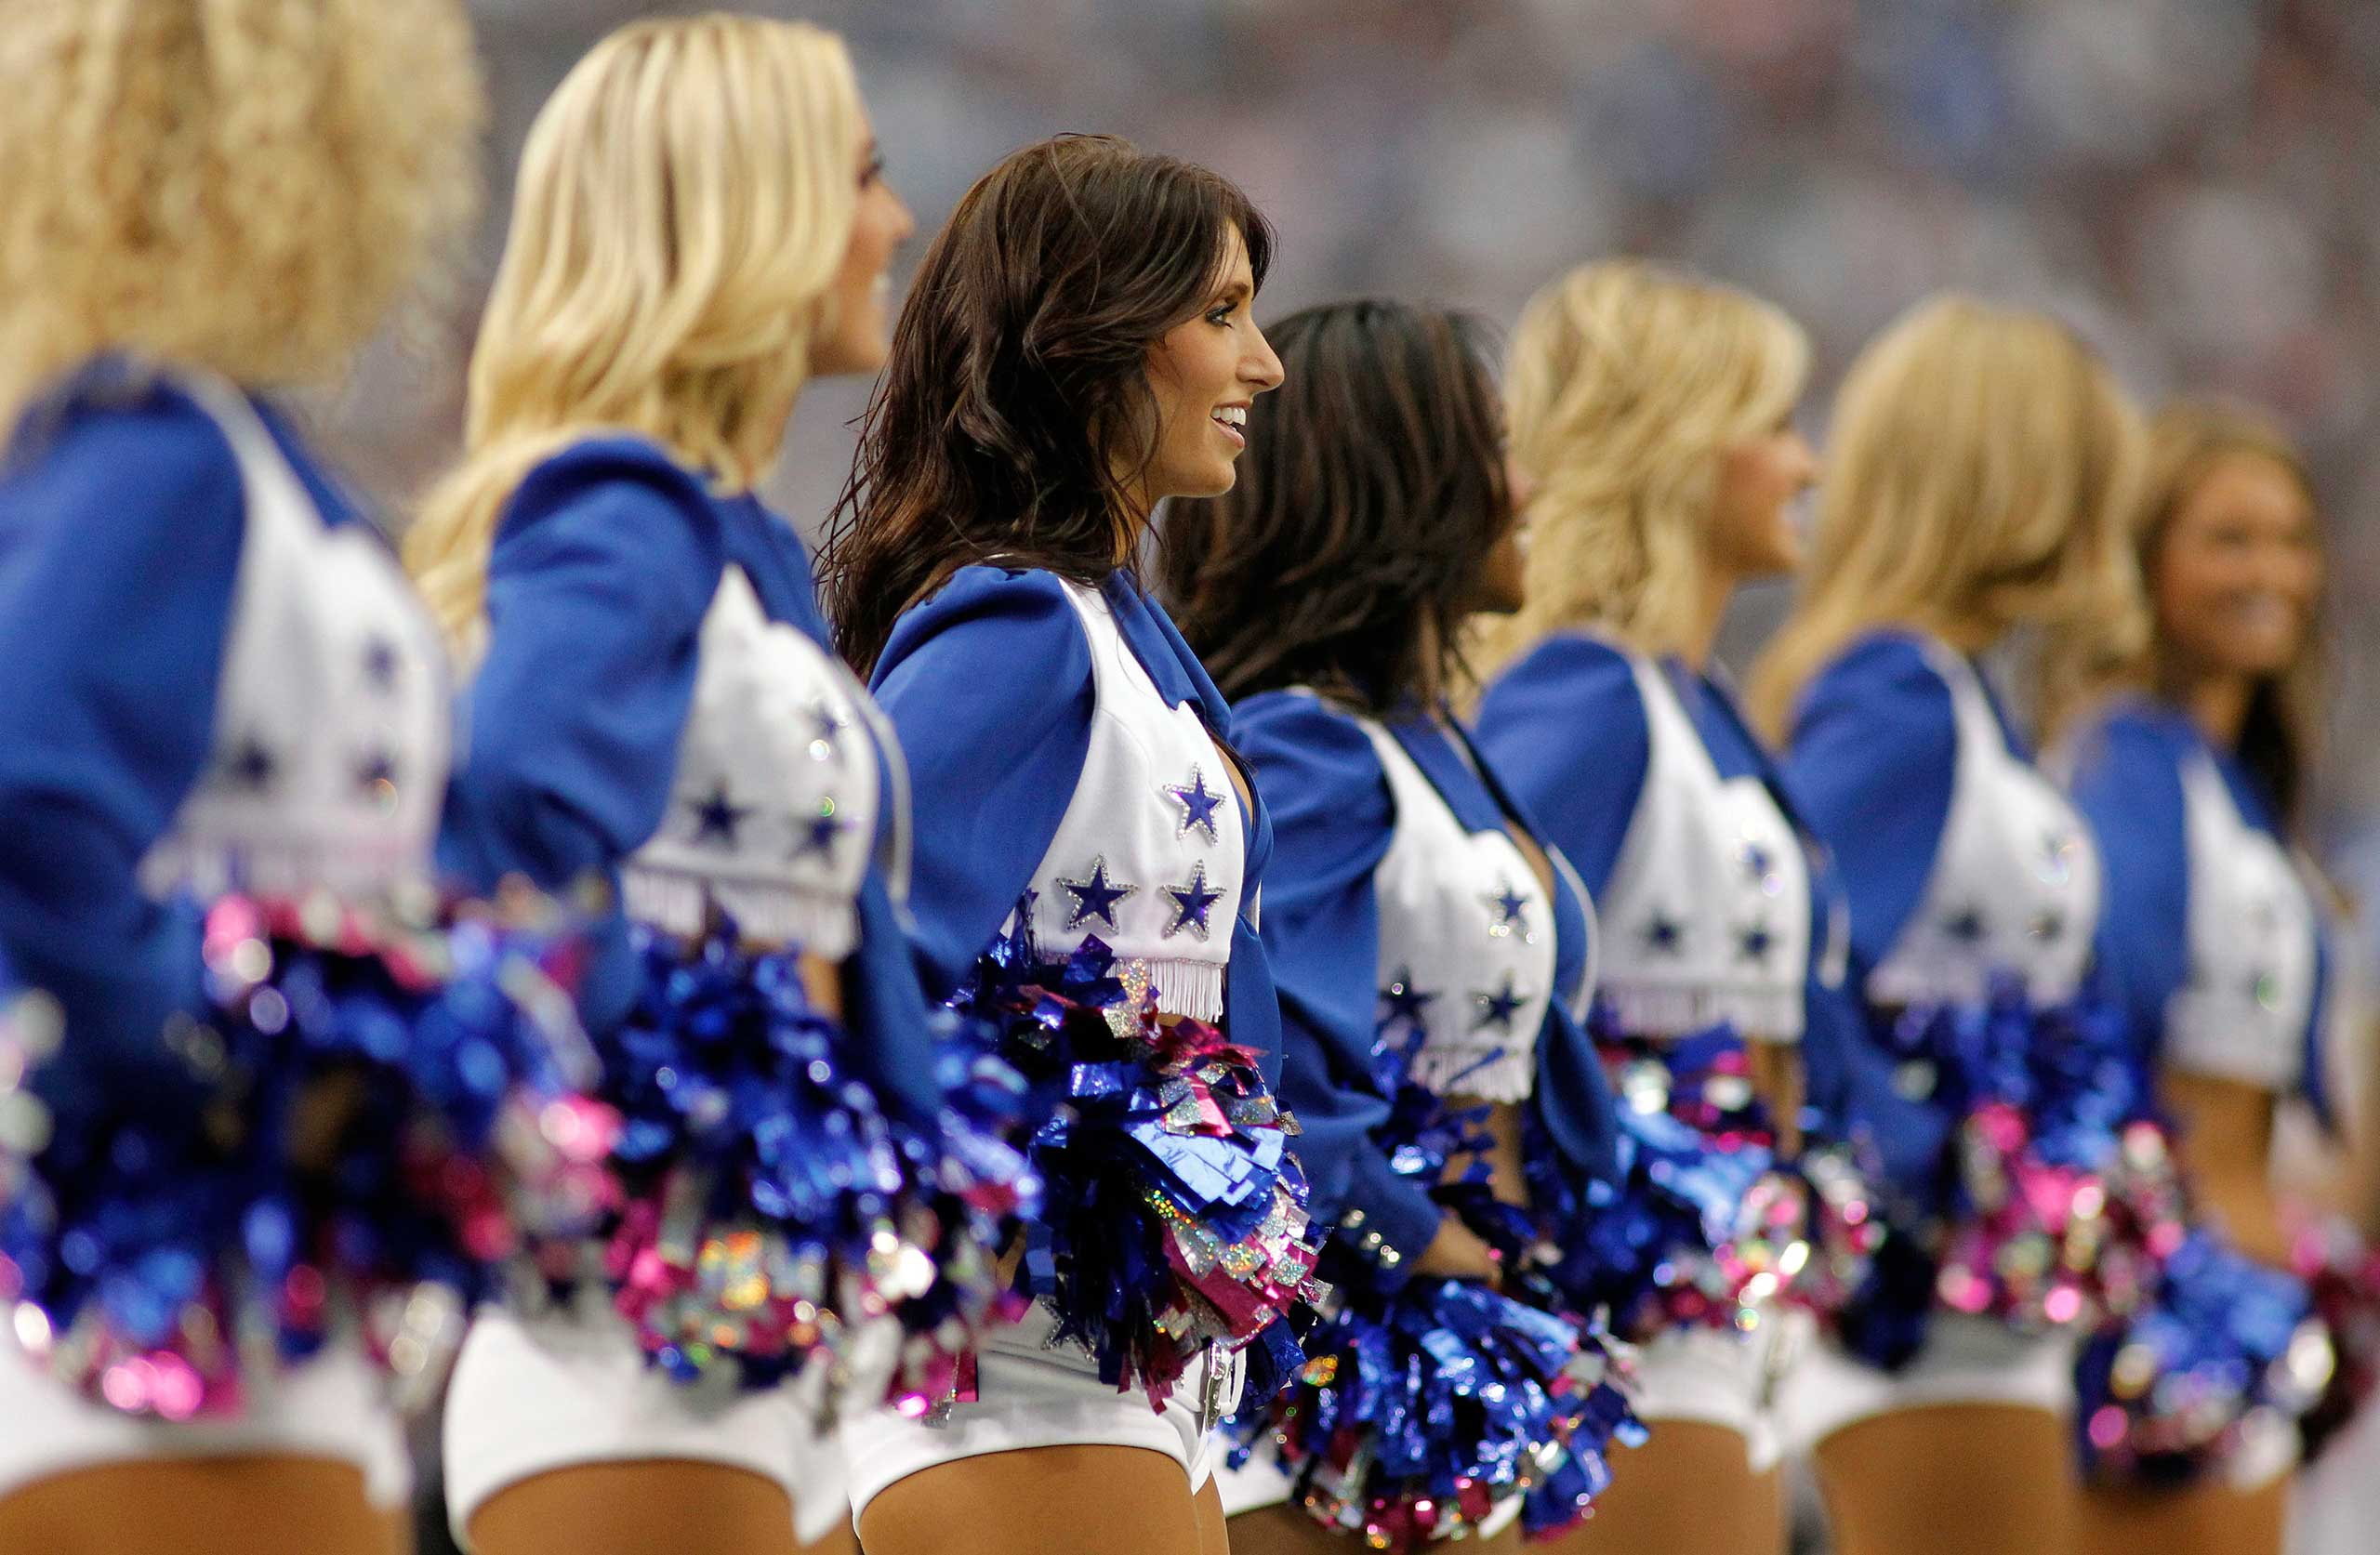 The Dallas Cowboys cheerleaders perform during the game between the Cowboys and Detroit Lions at Cowboys Stadium in Arlington, Texas.